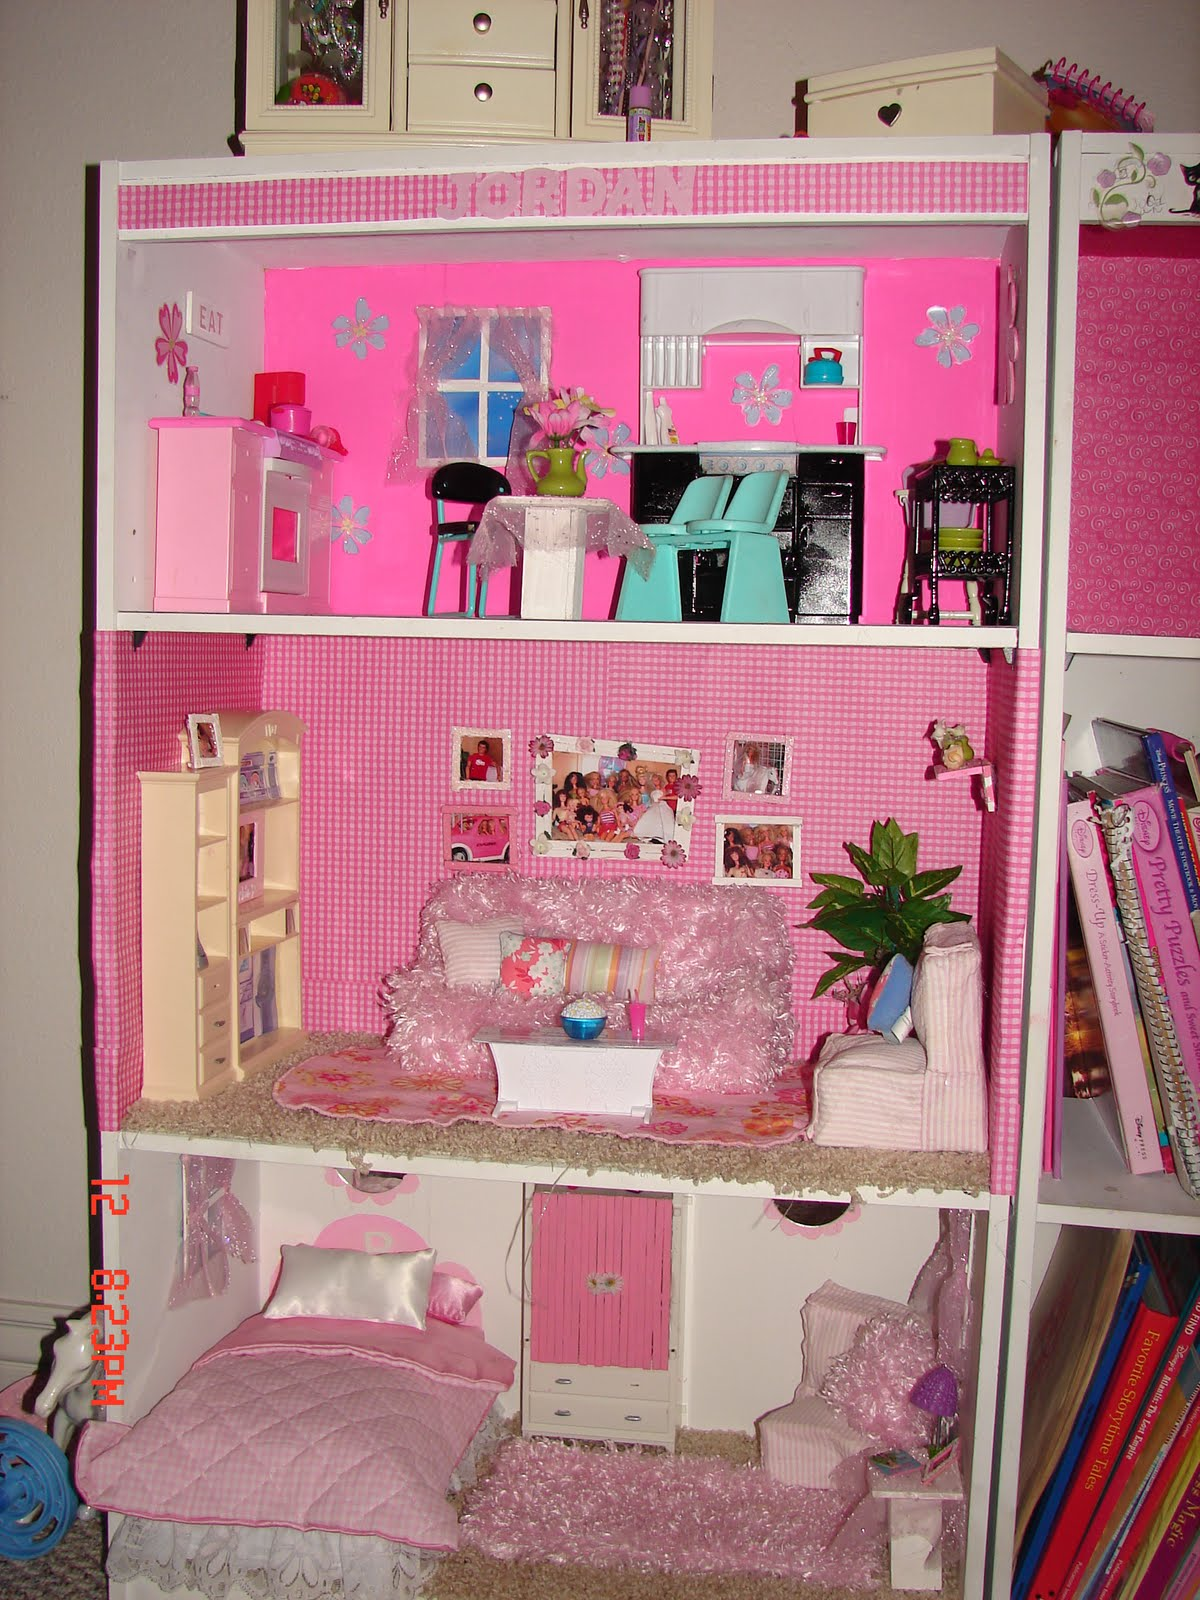 Barbie Bedroom In A Box: DIY Barbie House From A Shelf